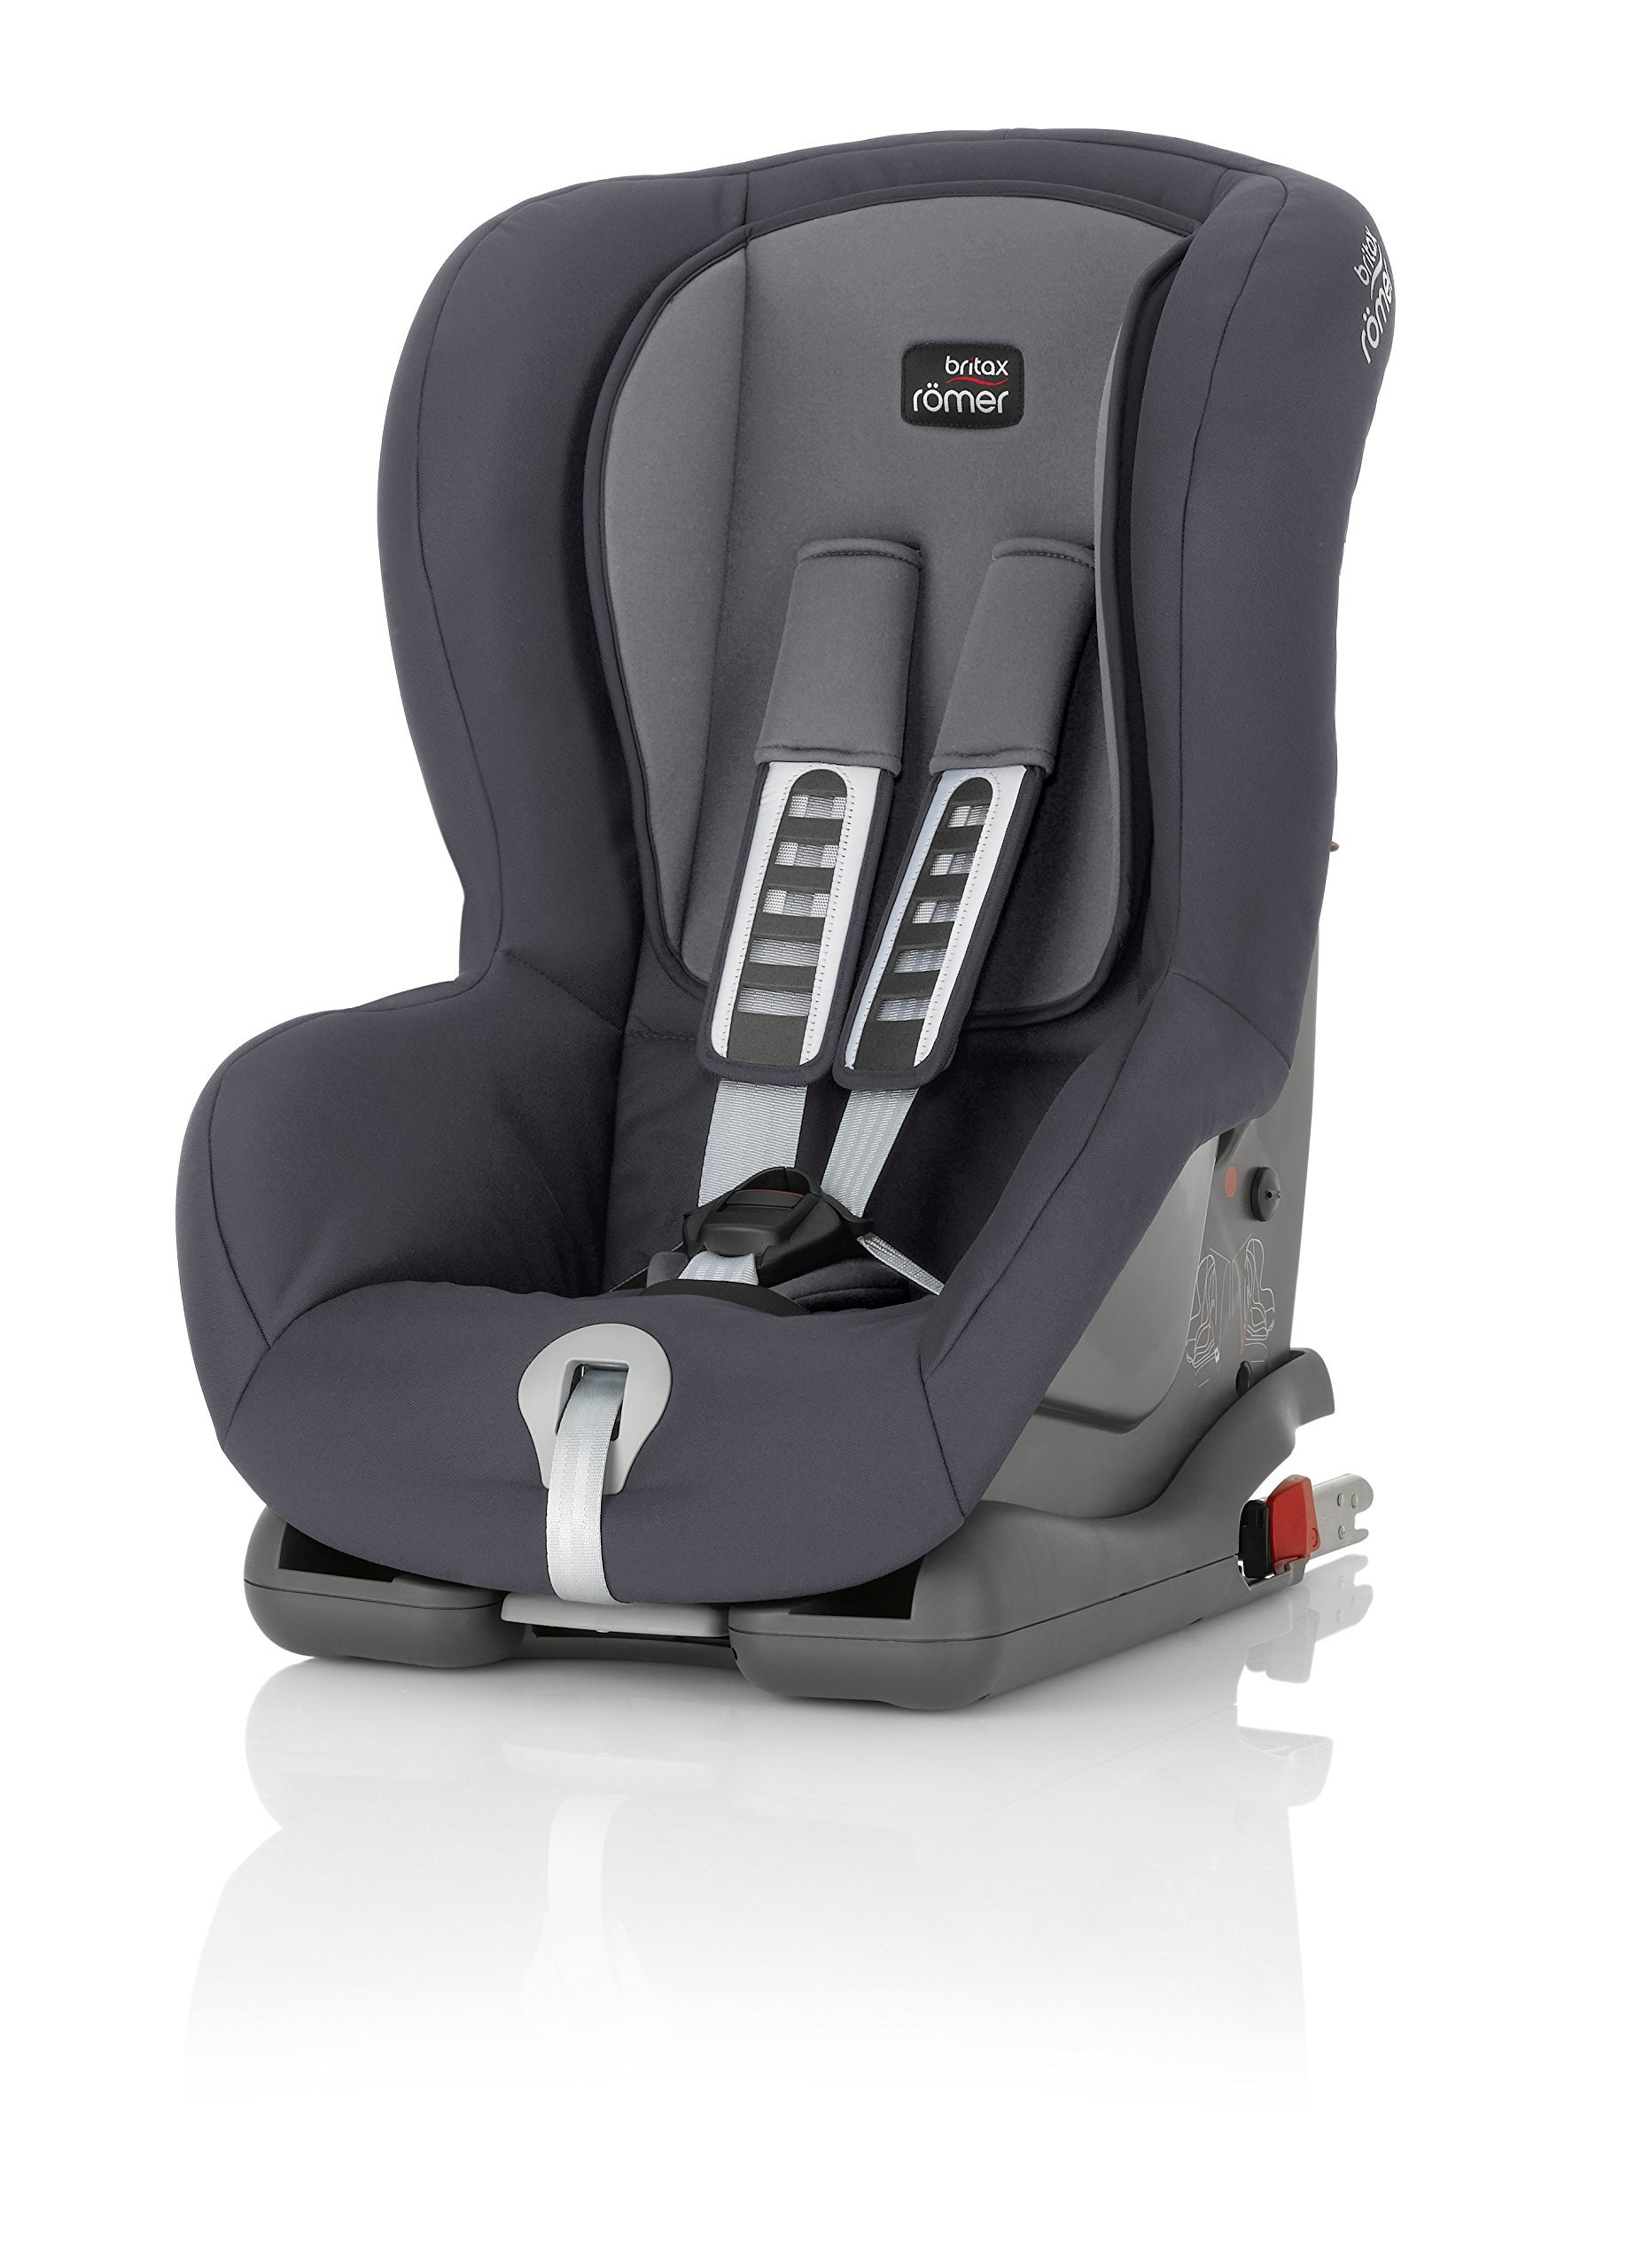 Britax Römer DUO PLUS Group 1 (9-18kg) Car Seat & DUO PLUS Top Tether Kit - Storm Grey Britax Römer This versatile car seat can be installed with the 3-point seat belt or ISOFIX and Top Tether (Top Tether Included) Comfort without compromise - deep, padded side wings and multi-position recline Pivot link system to reduce forward movement in the event of an accident 2